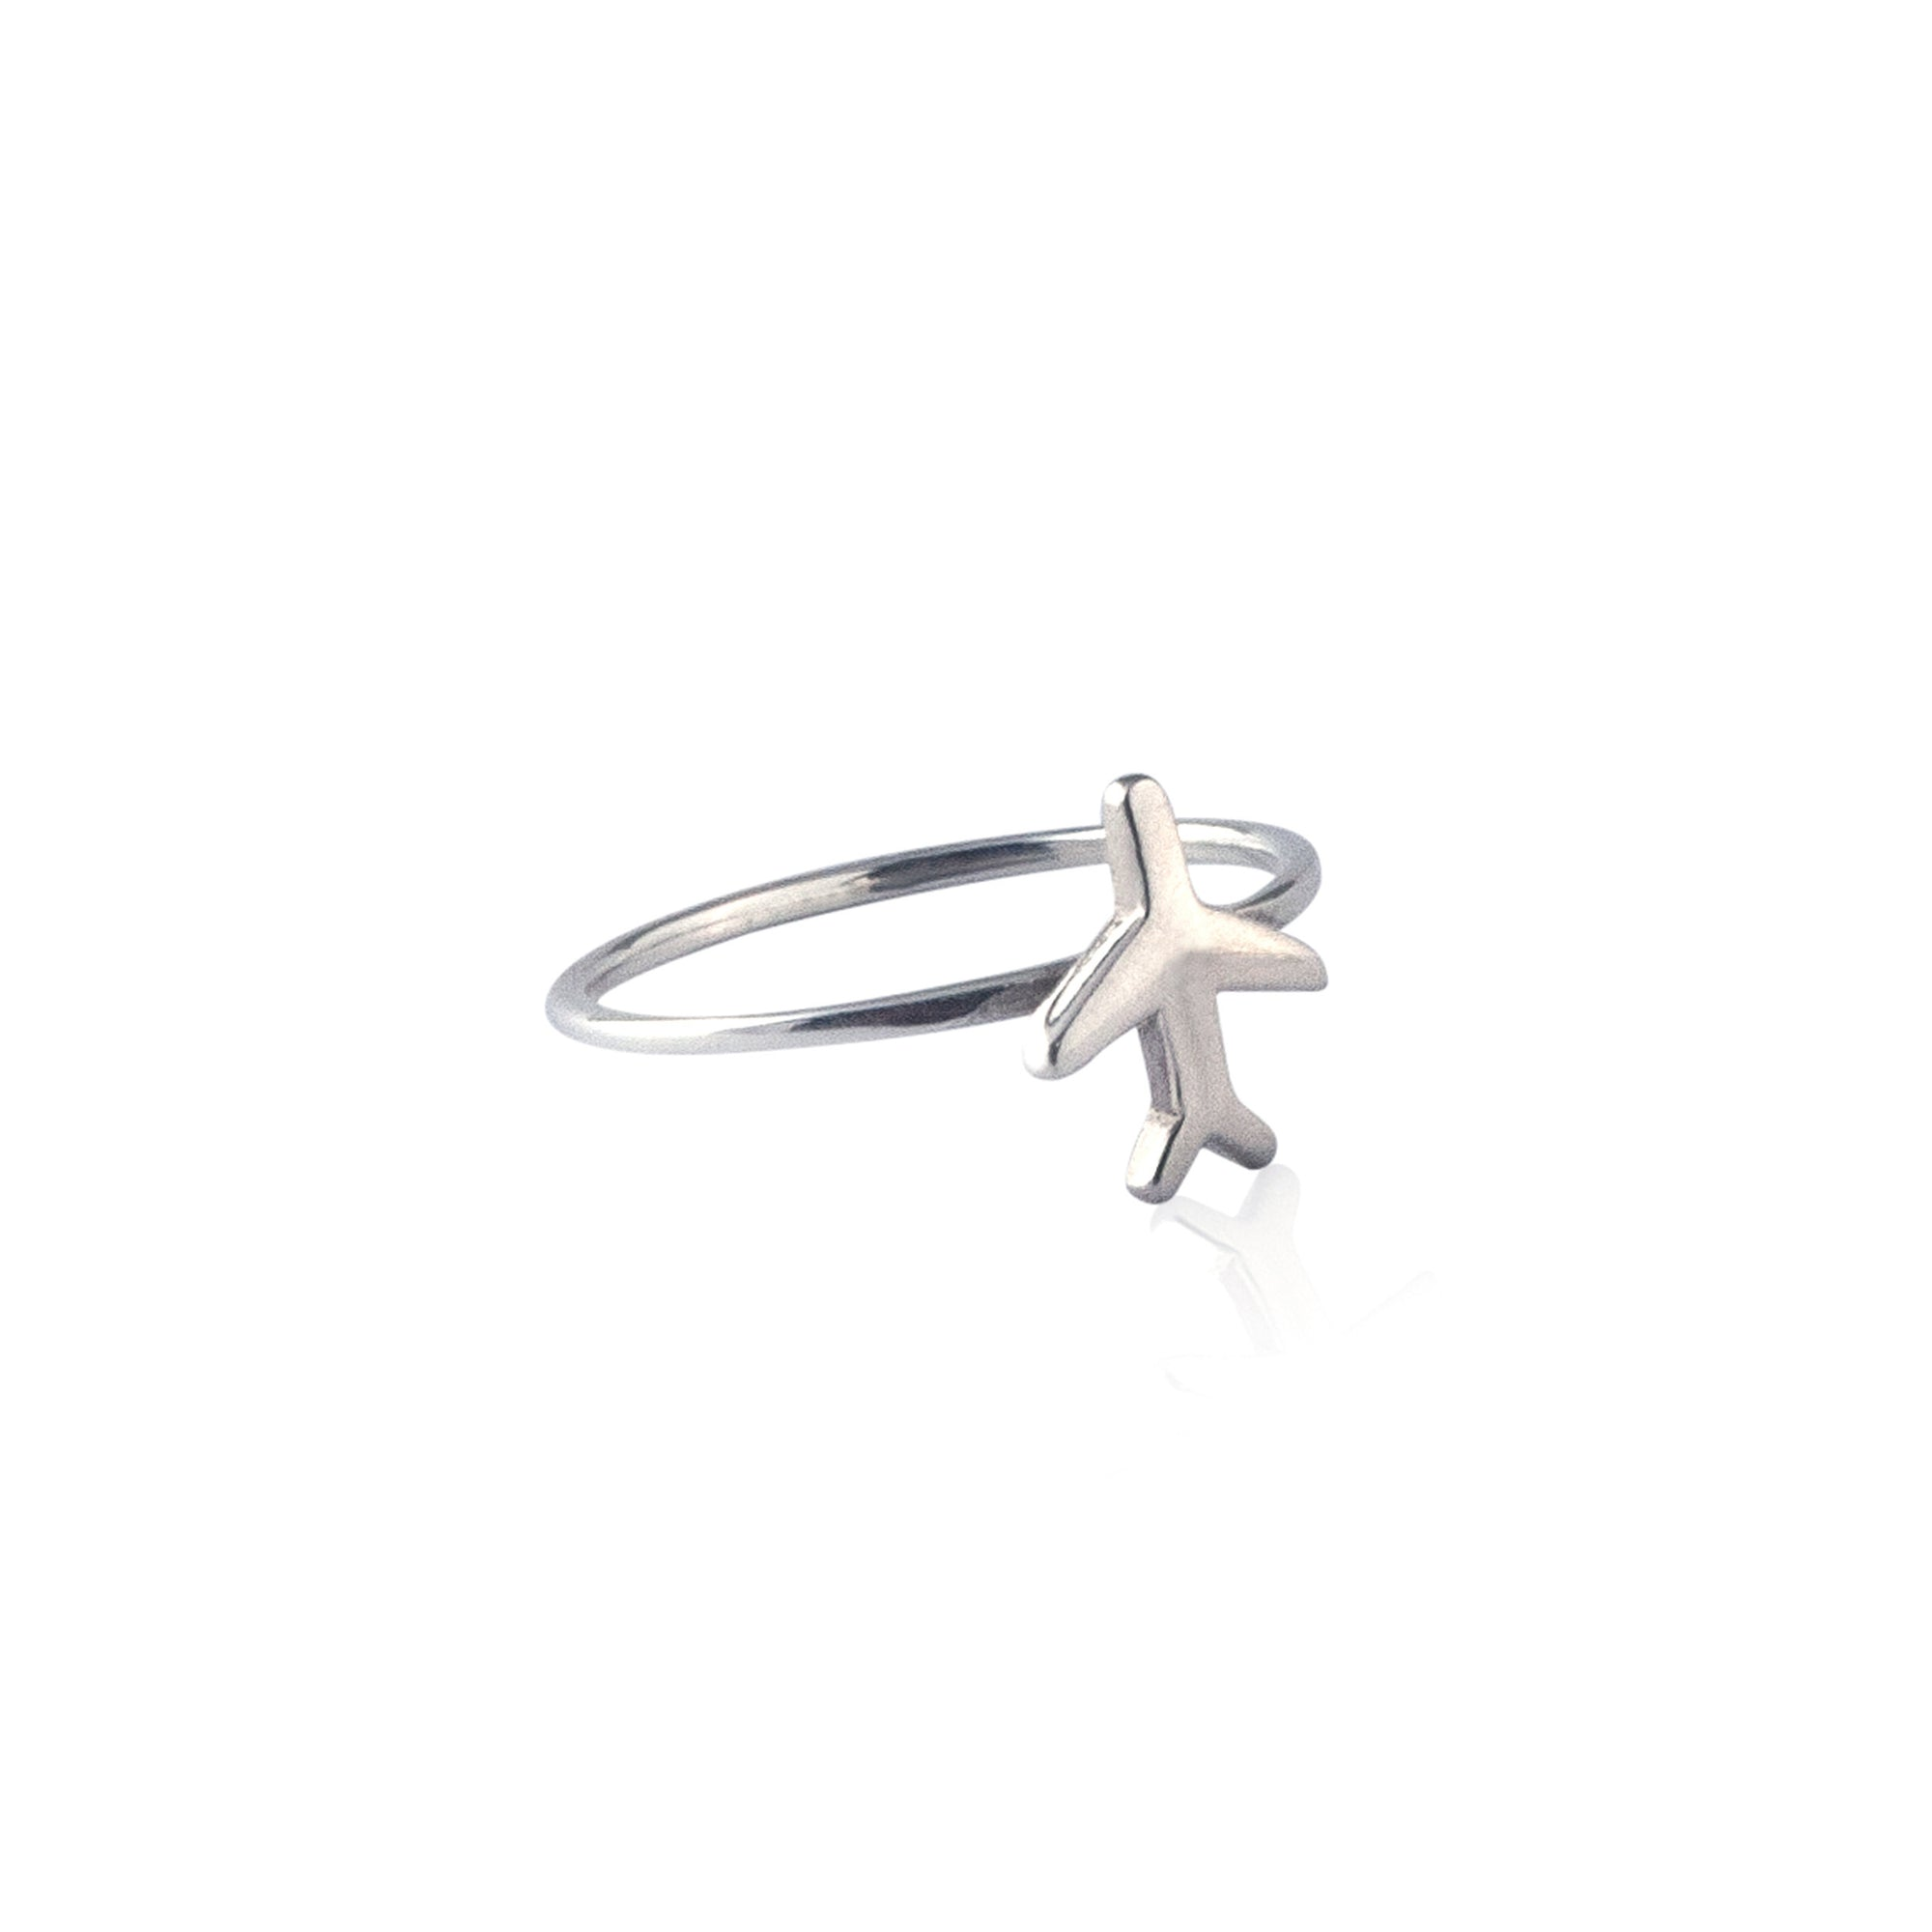 Just Plane Adventurous Travel Inspired Ring - La Luna Rose Jewellery